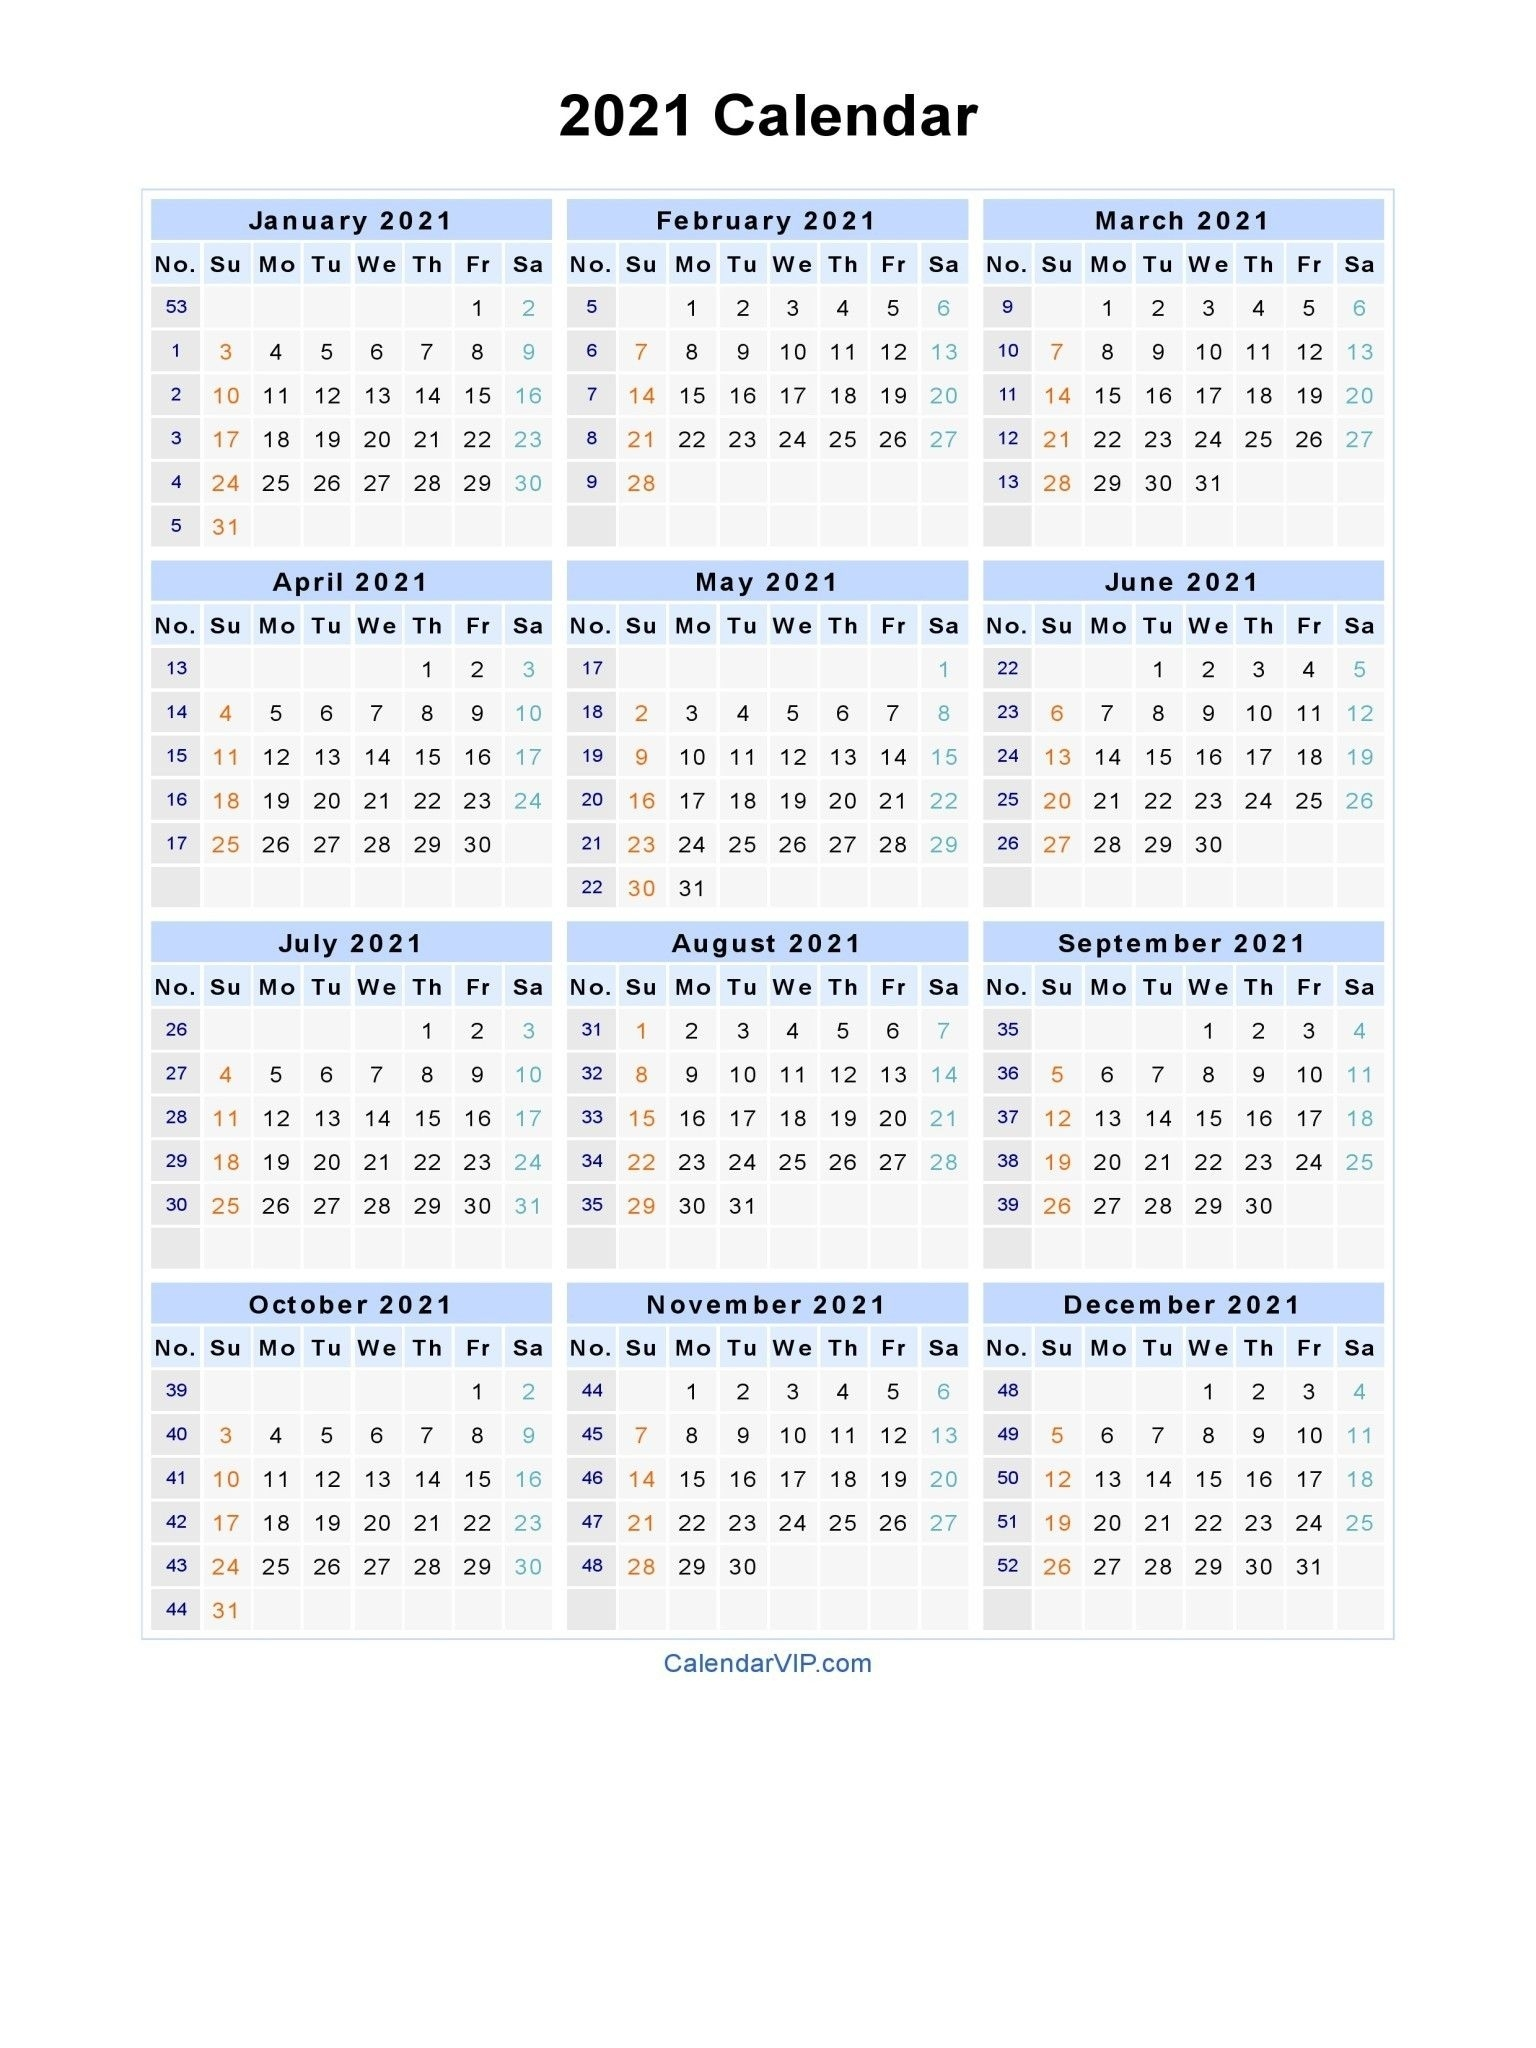 Take Calendar With Days Numbered For 2021